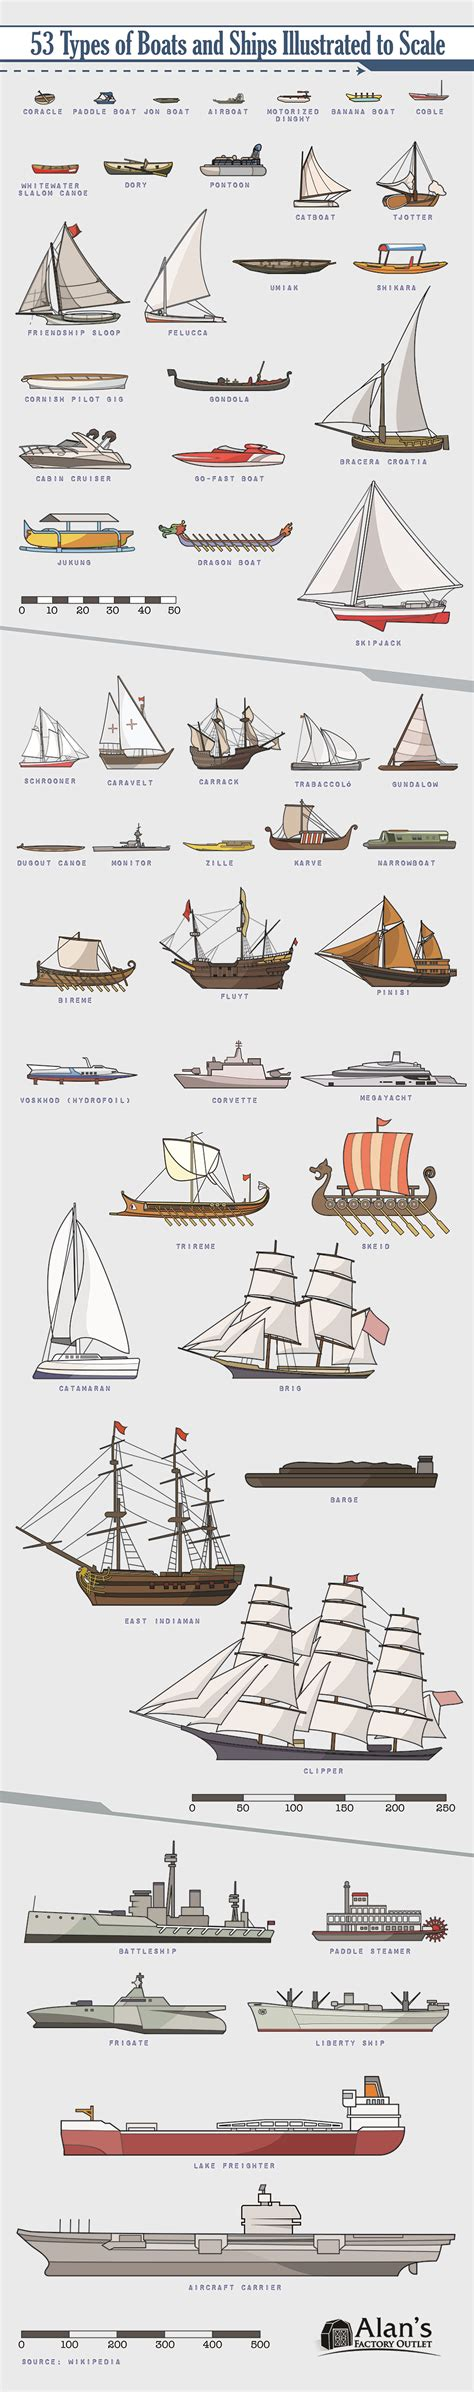 Types Of Boats by 53 Types Of Boats And Ships Illustrated To Scale